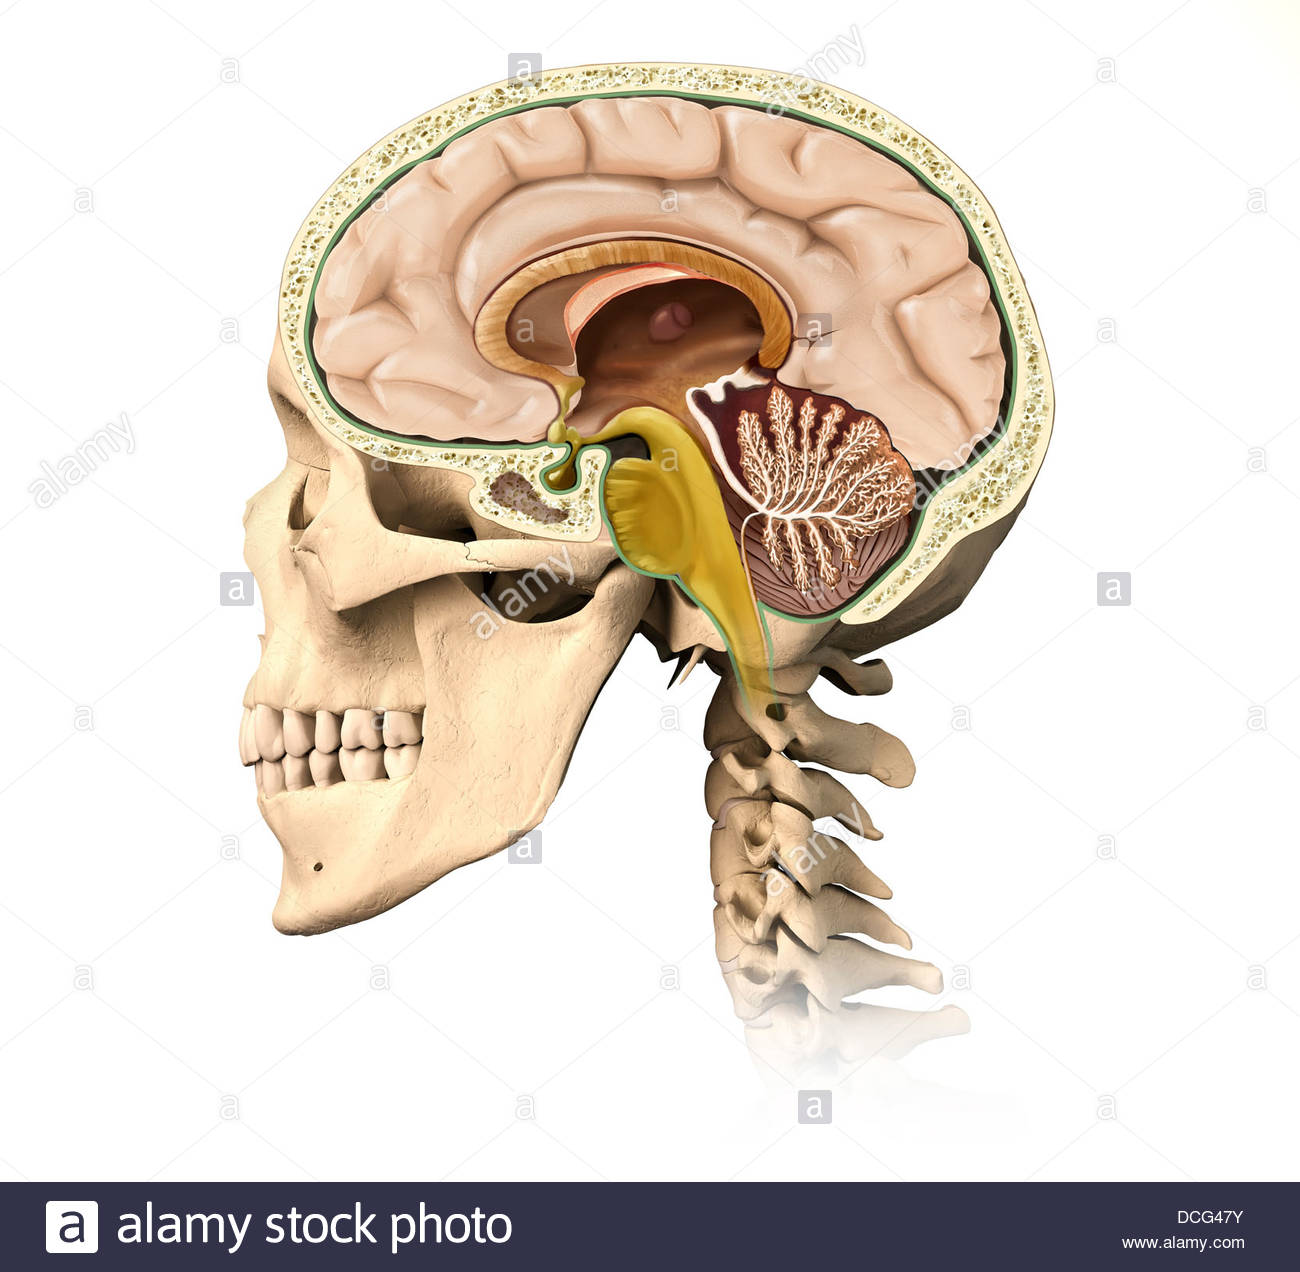 Brain Spinal Cord Cross Section Stock Photos & Brain Spinal Cord ...